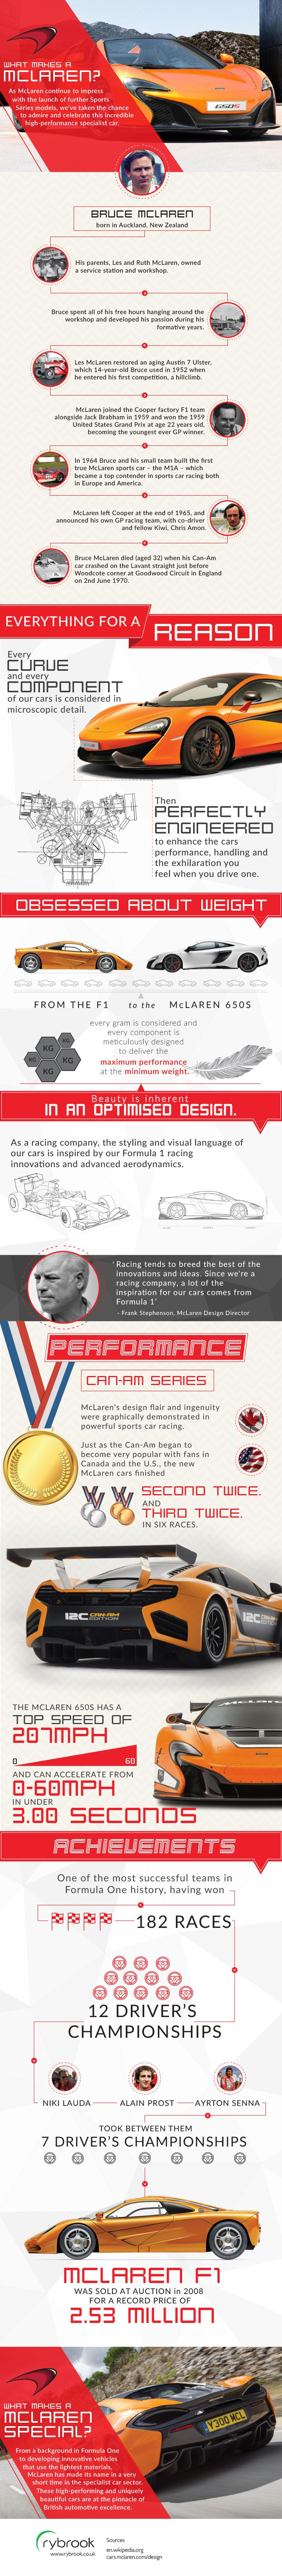 What Makes A McLaren? #supercars #specialistcars #motoring